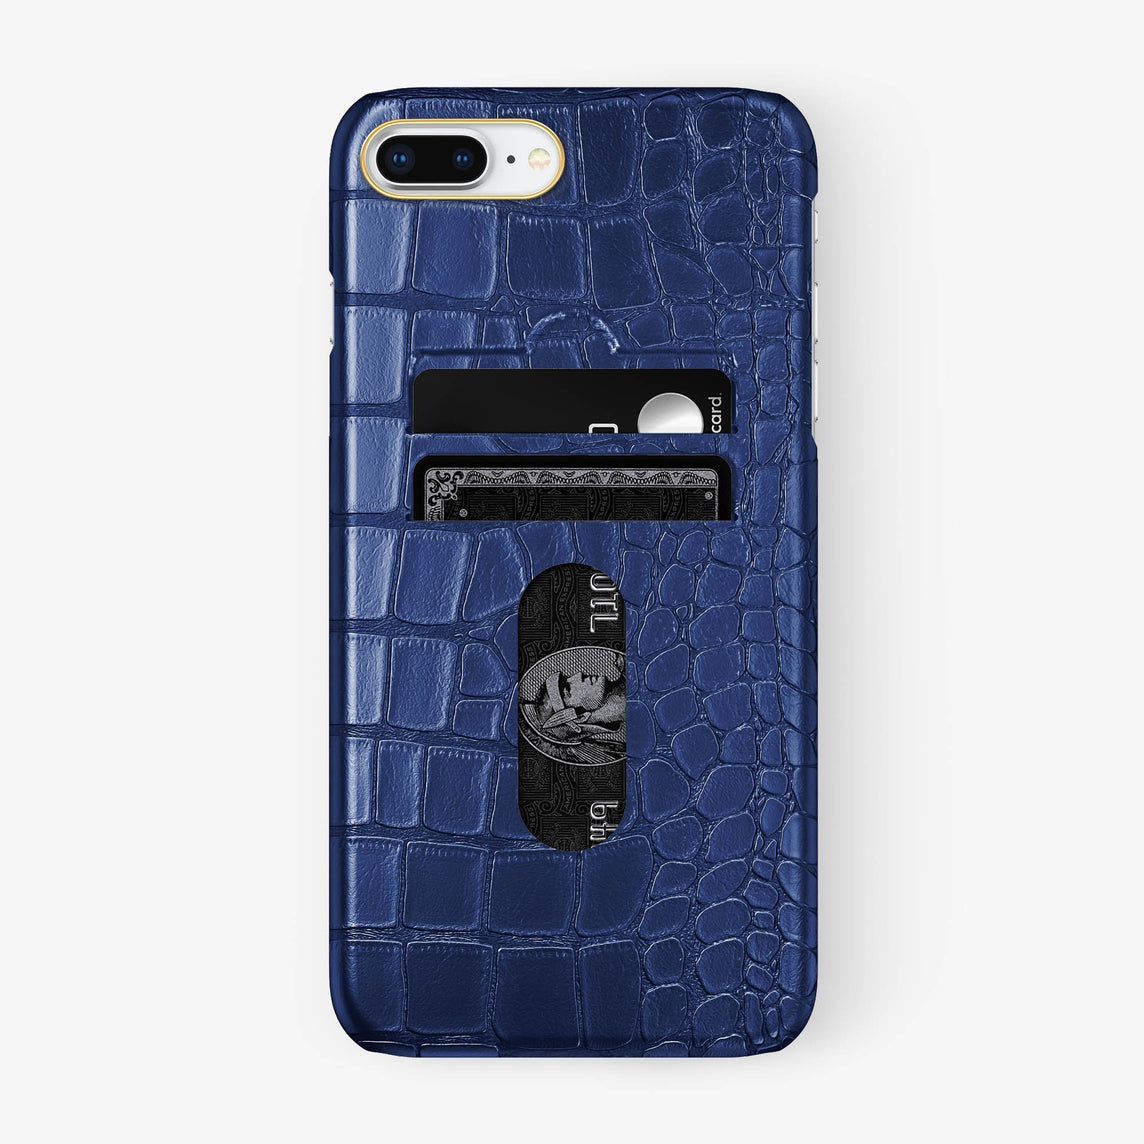 Alligator Card Holder Case iPhone 7/8 Plus | Navy Blue - Yellow Gold